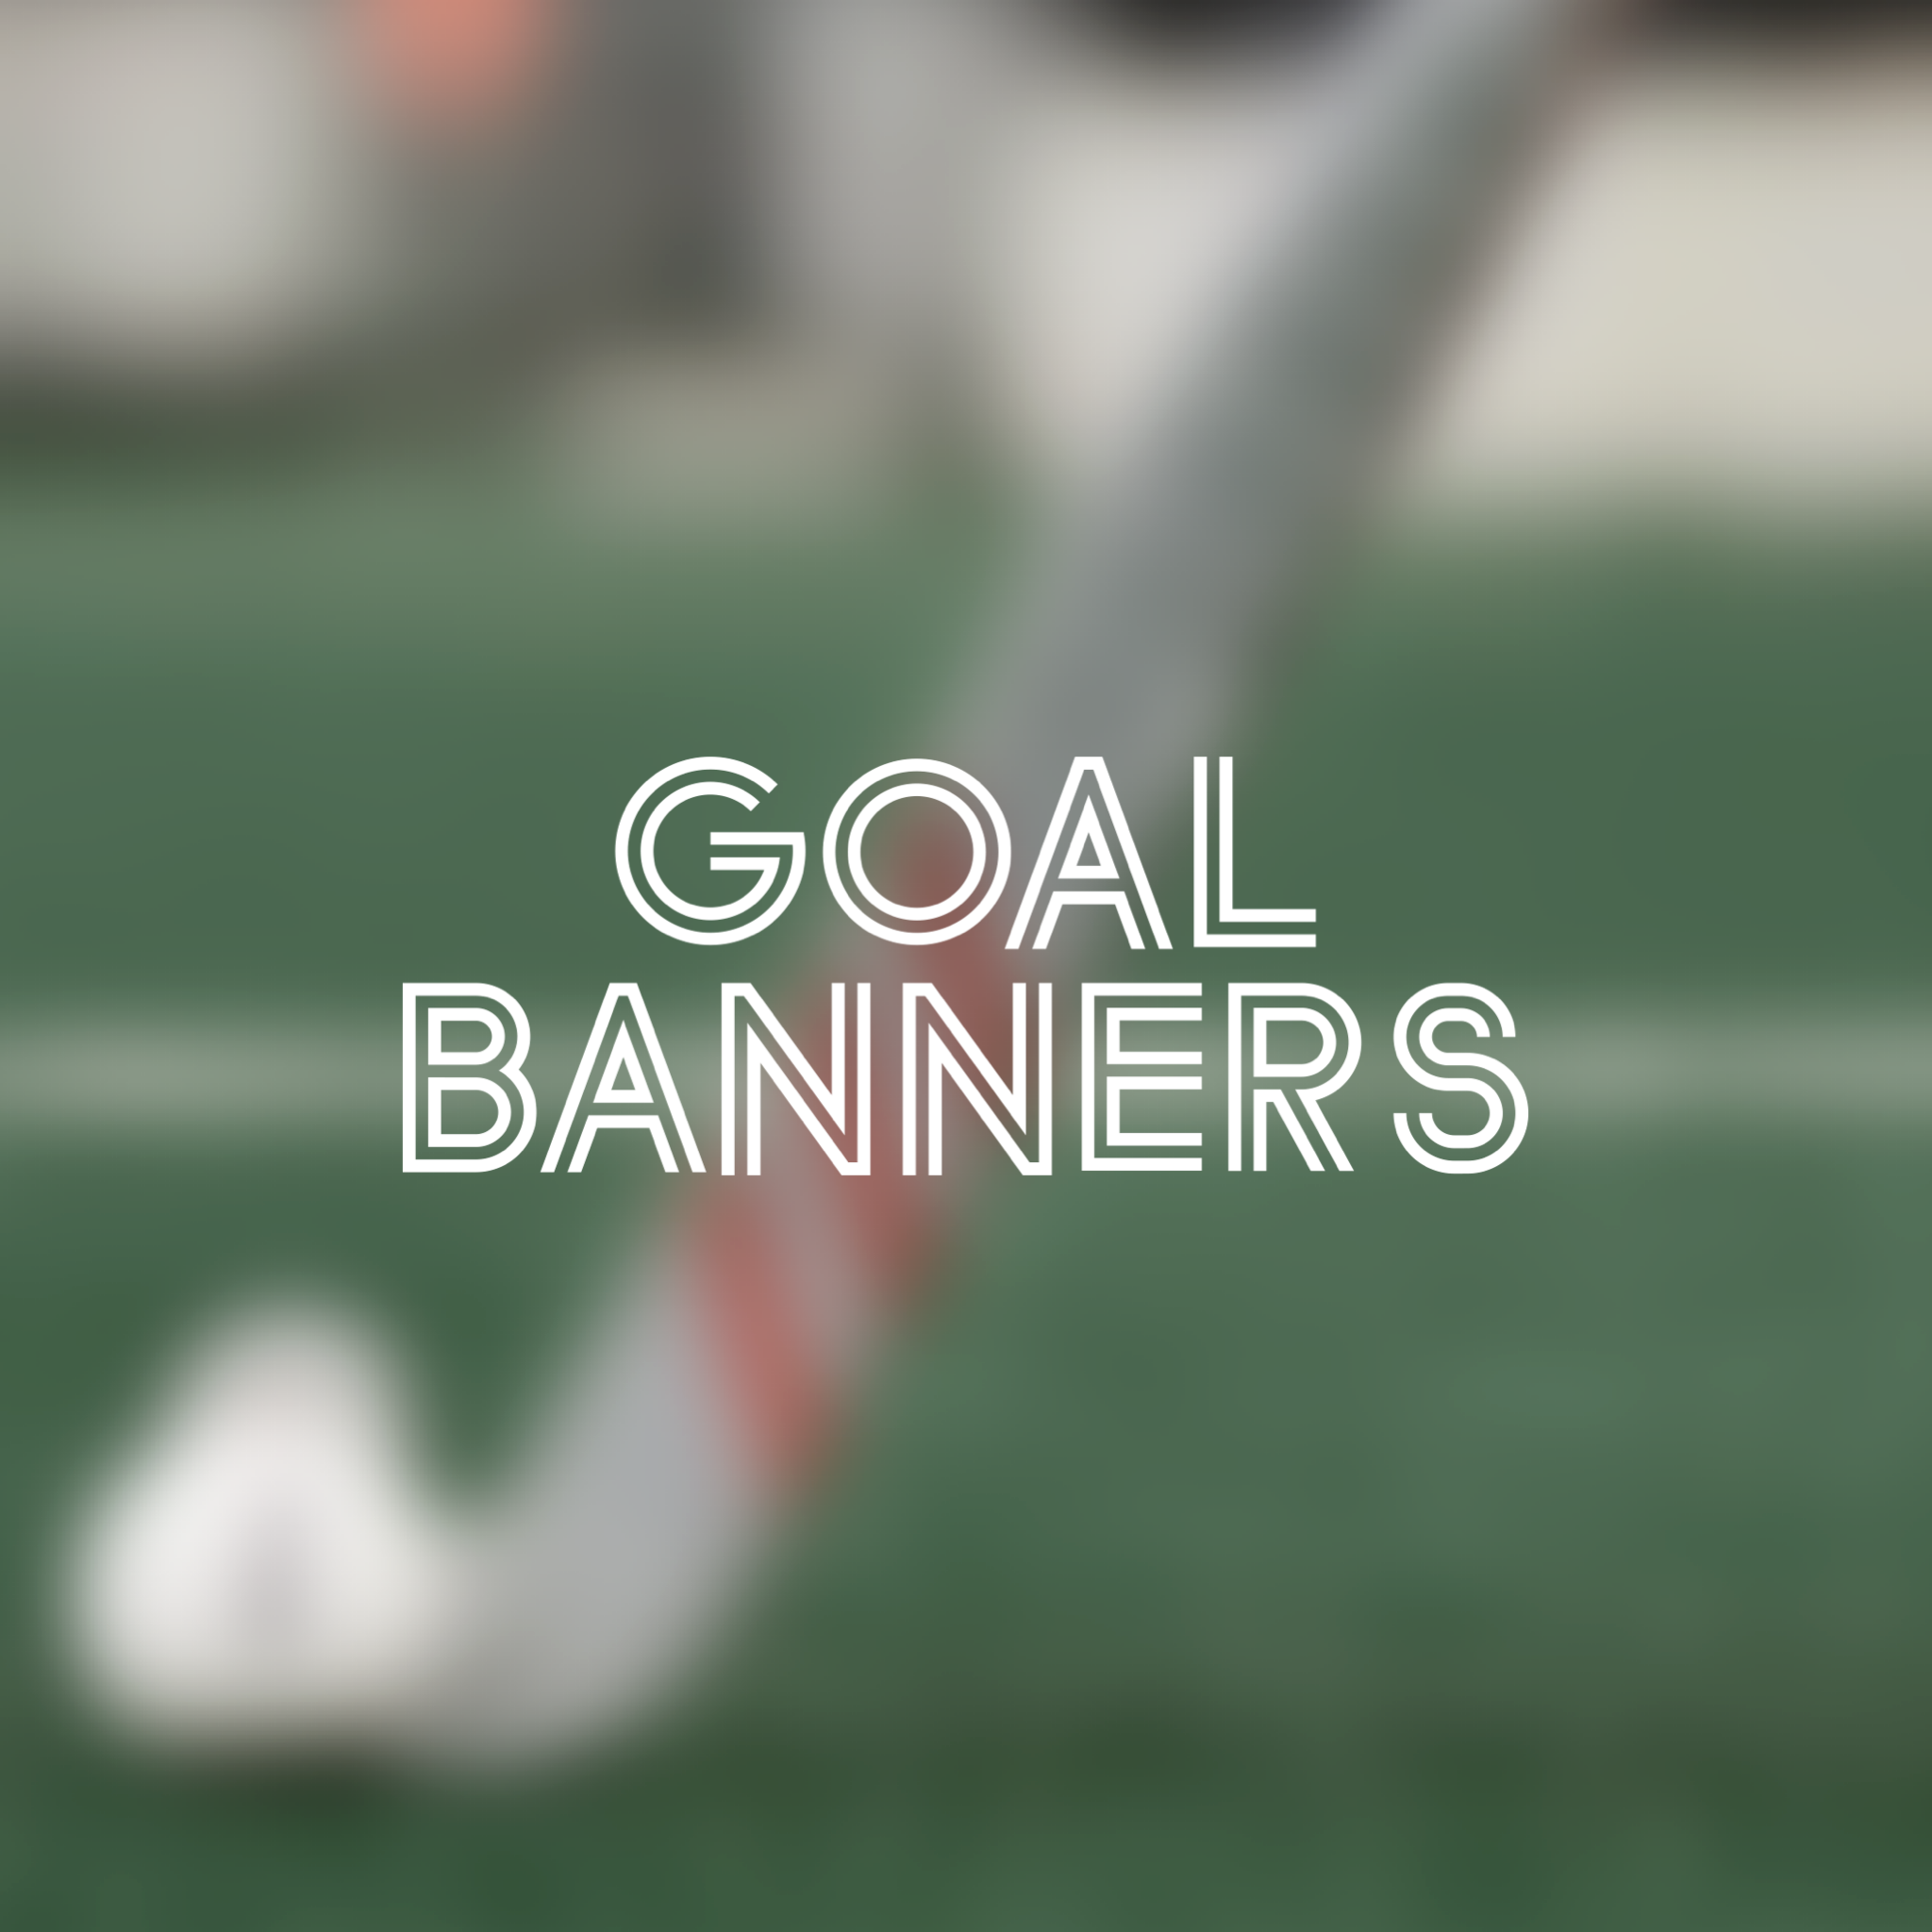 GOAL BANNERS